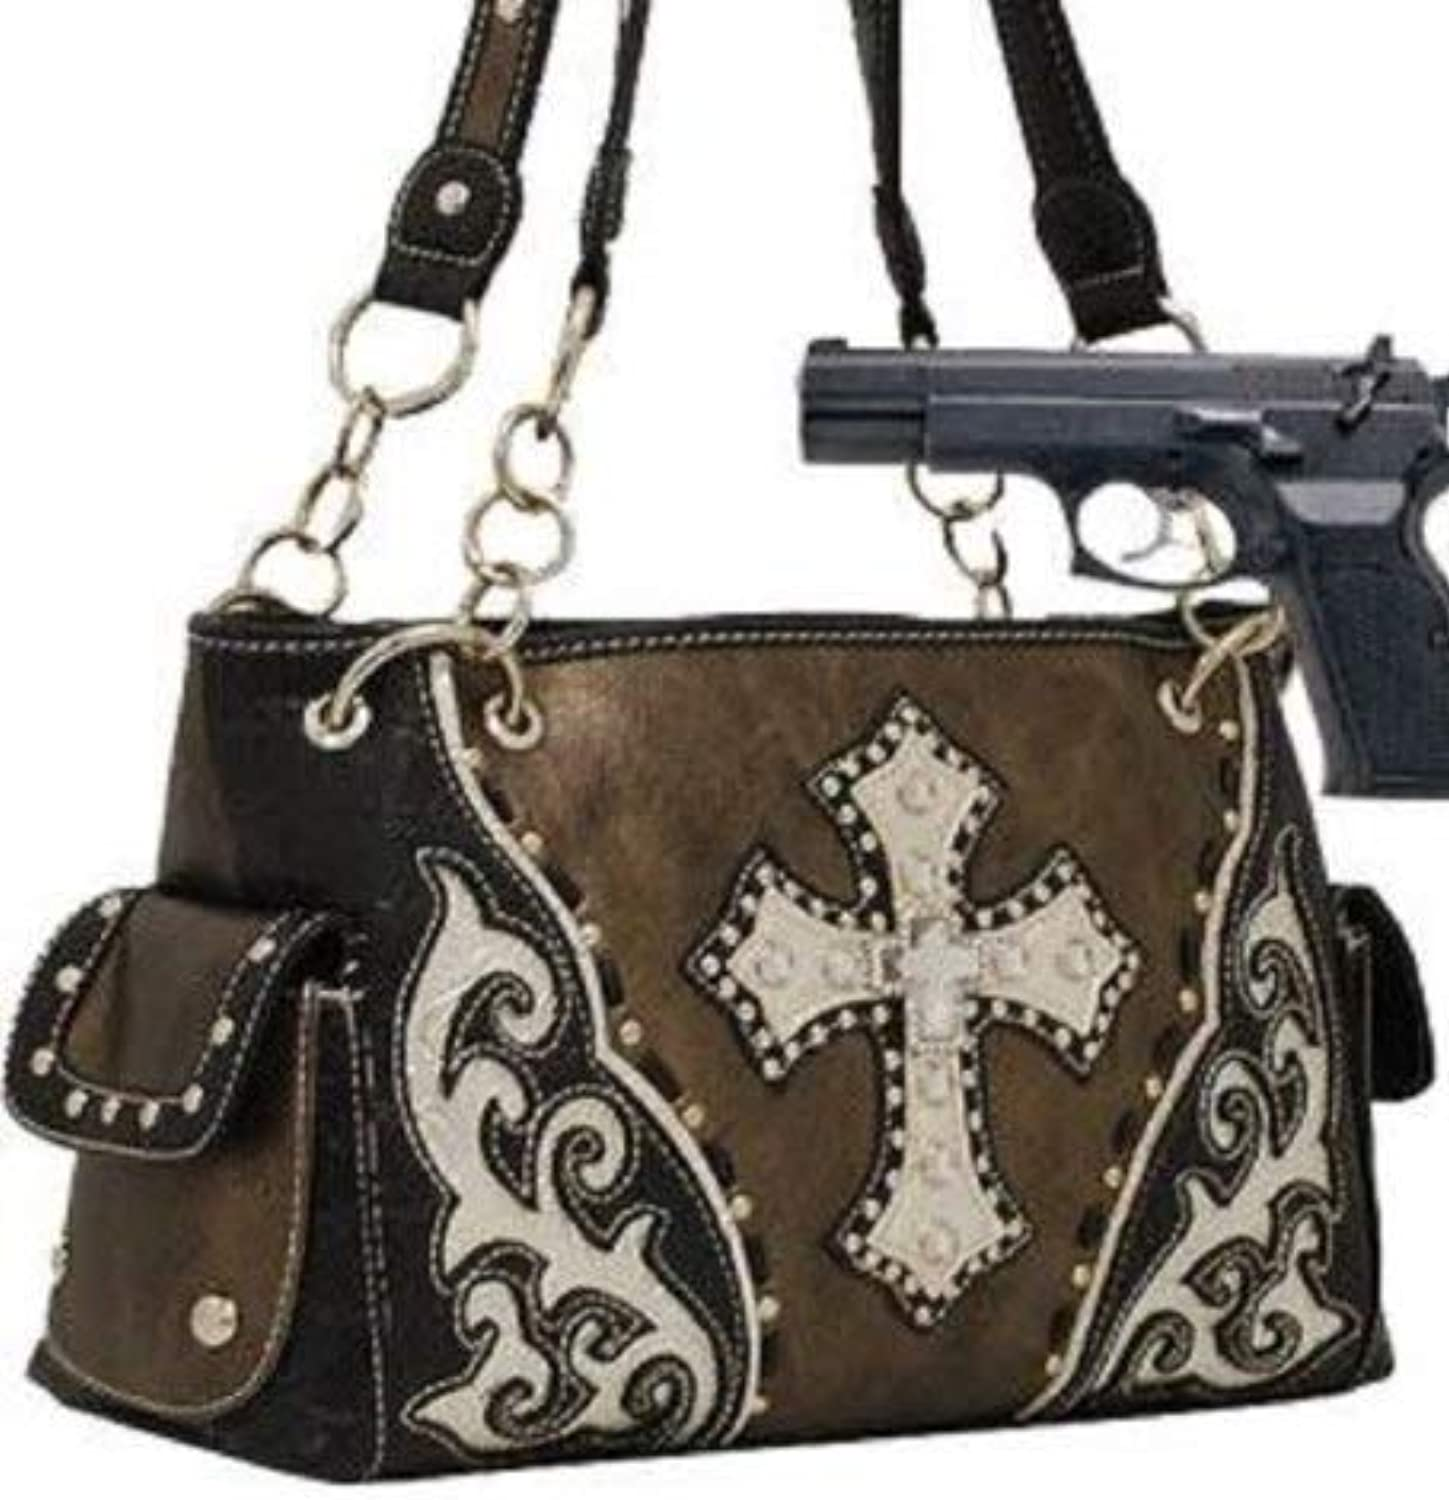 HBM Pewter Studded Cross Conceal and Carry Purse